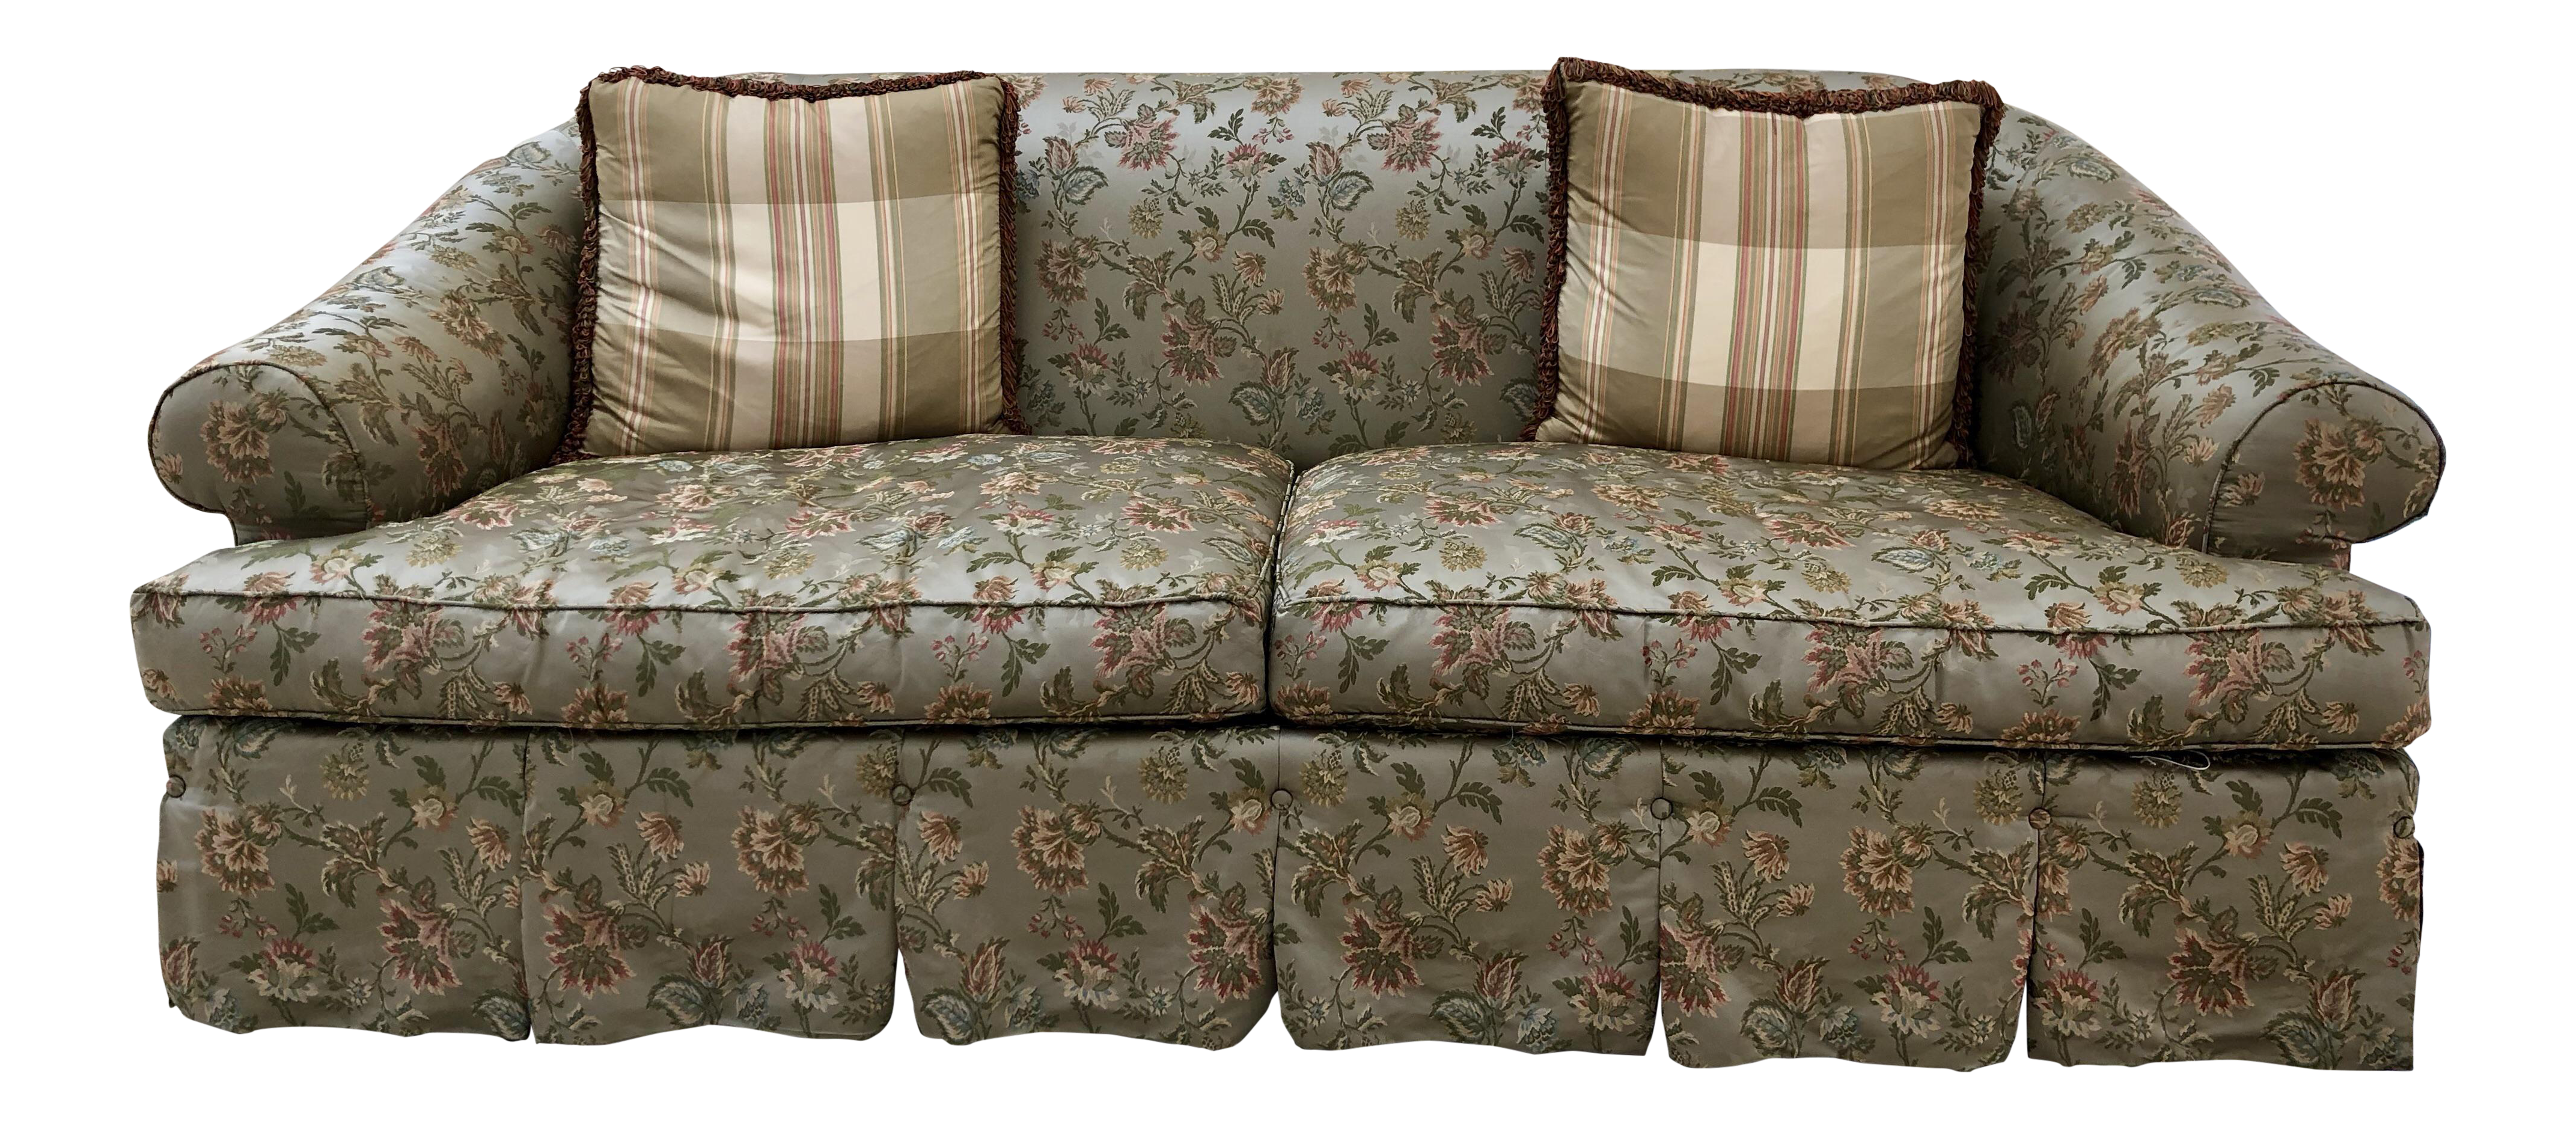 Incroyable Lillian August Silk Couch